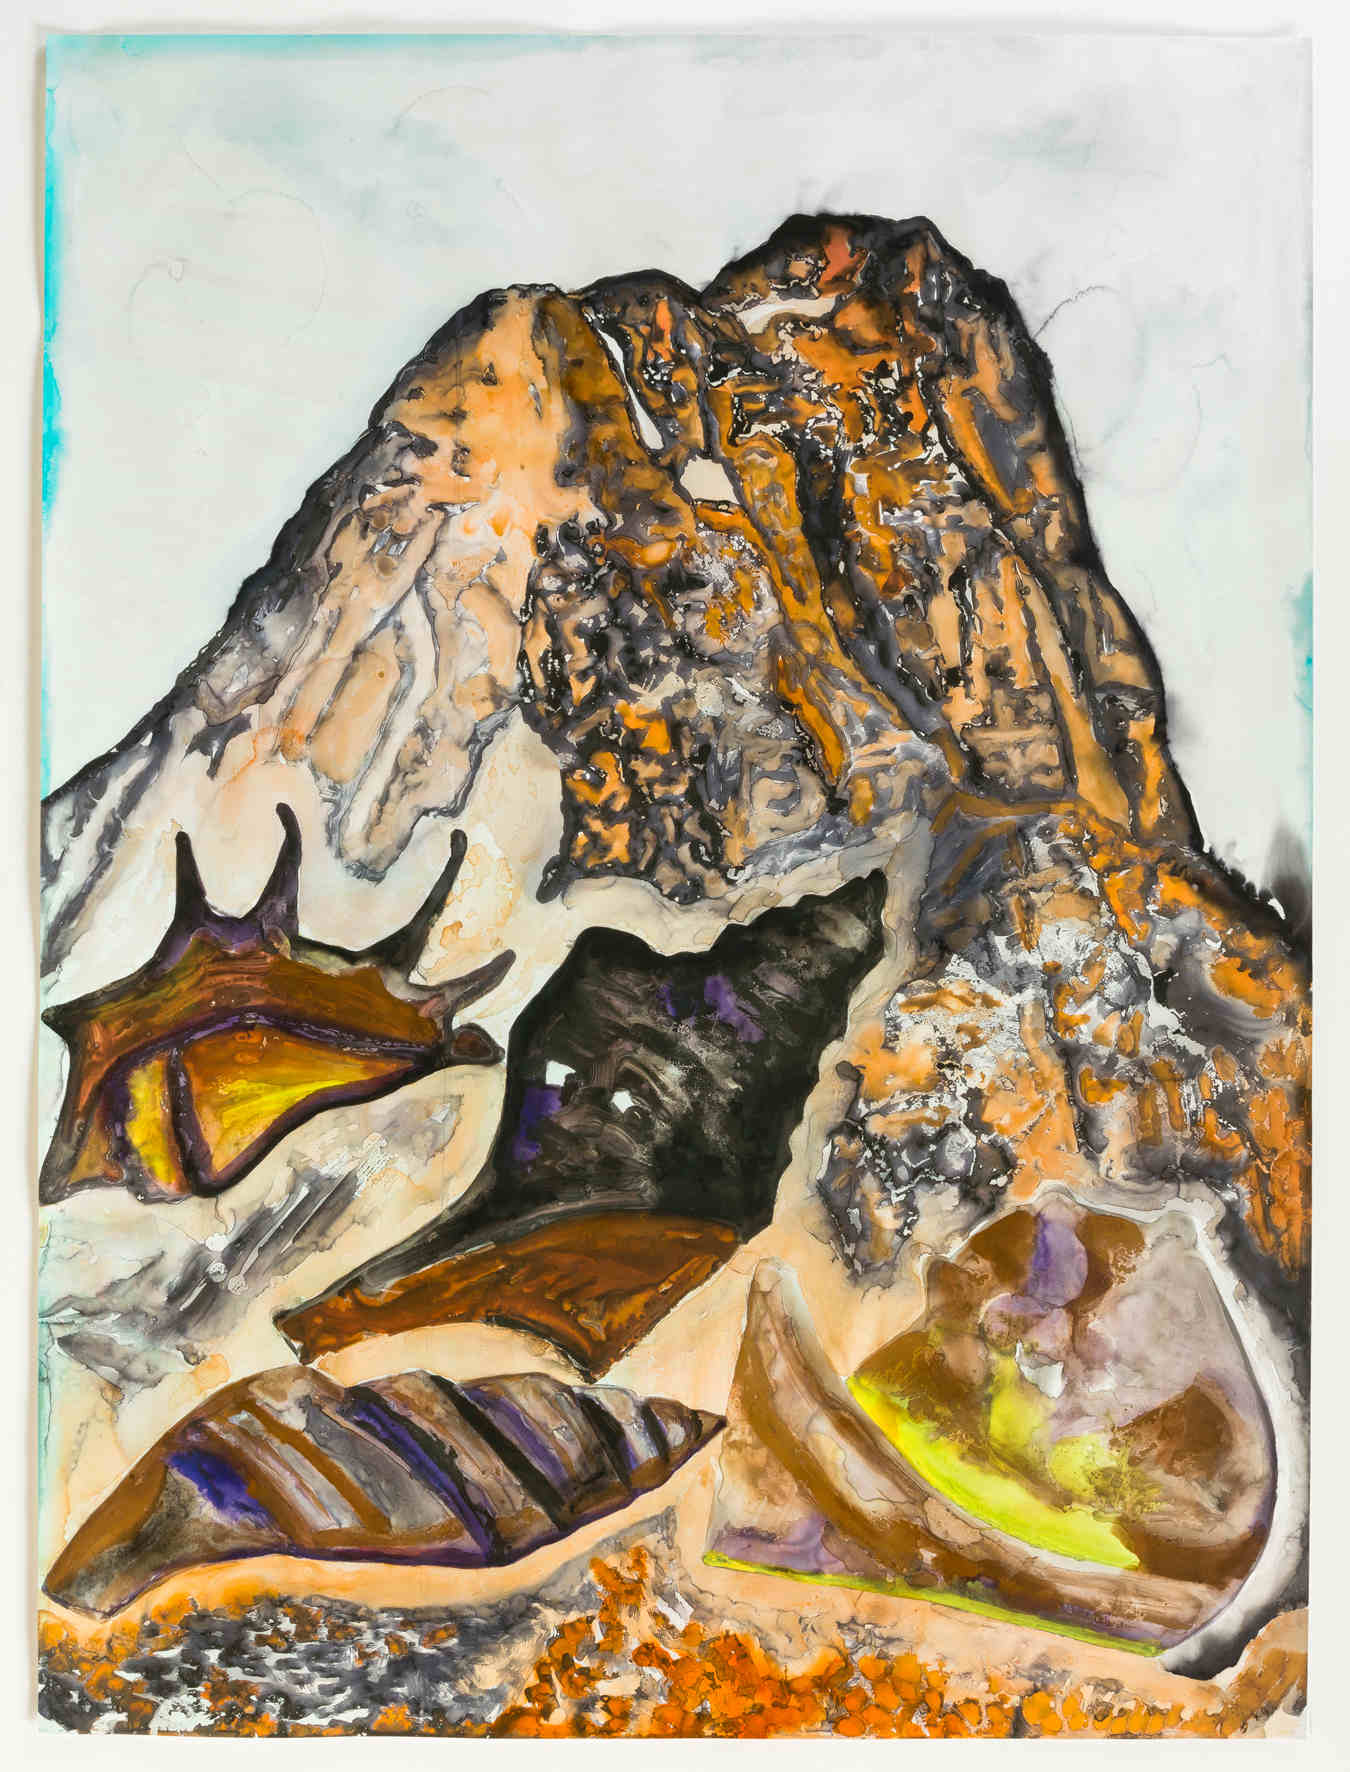 Francesco Clemente - Letters and Mountains III - 2012